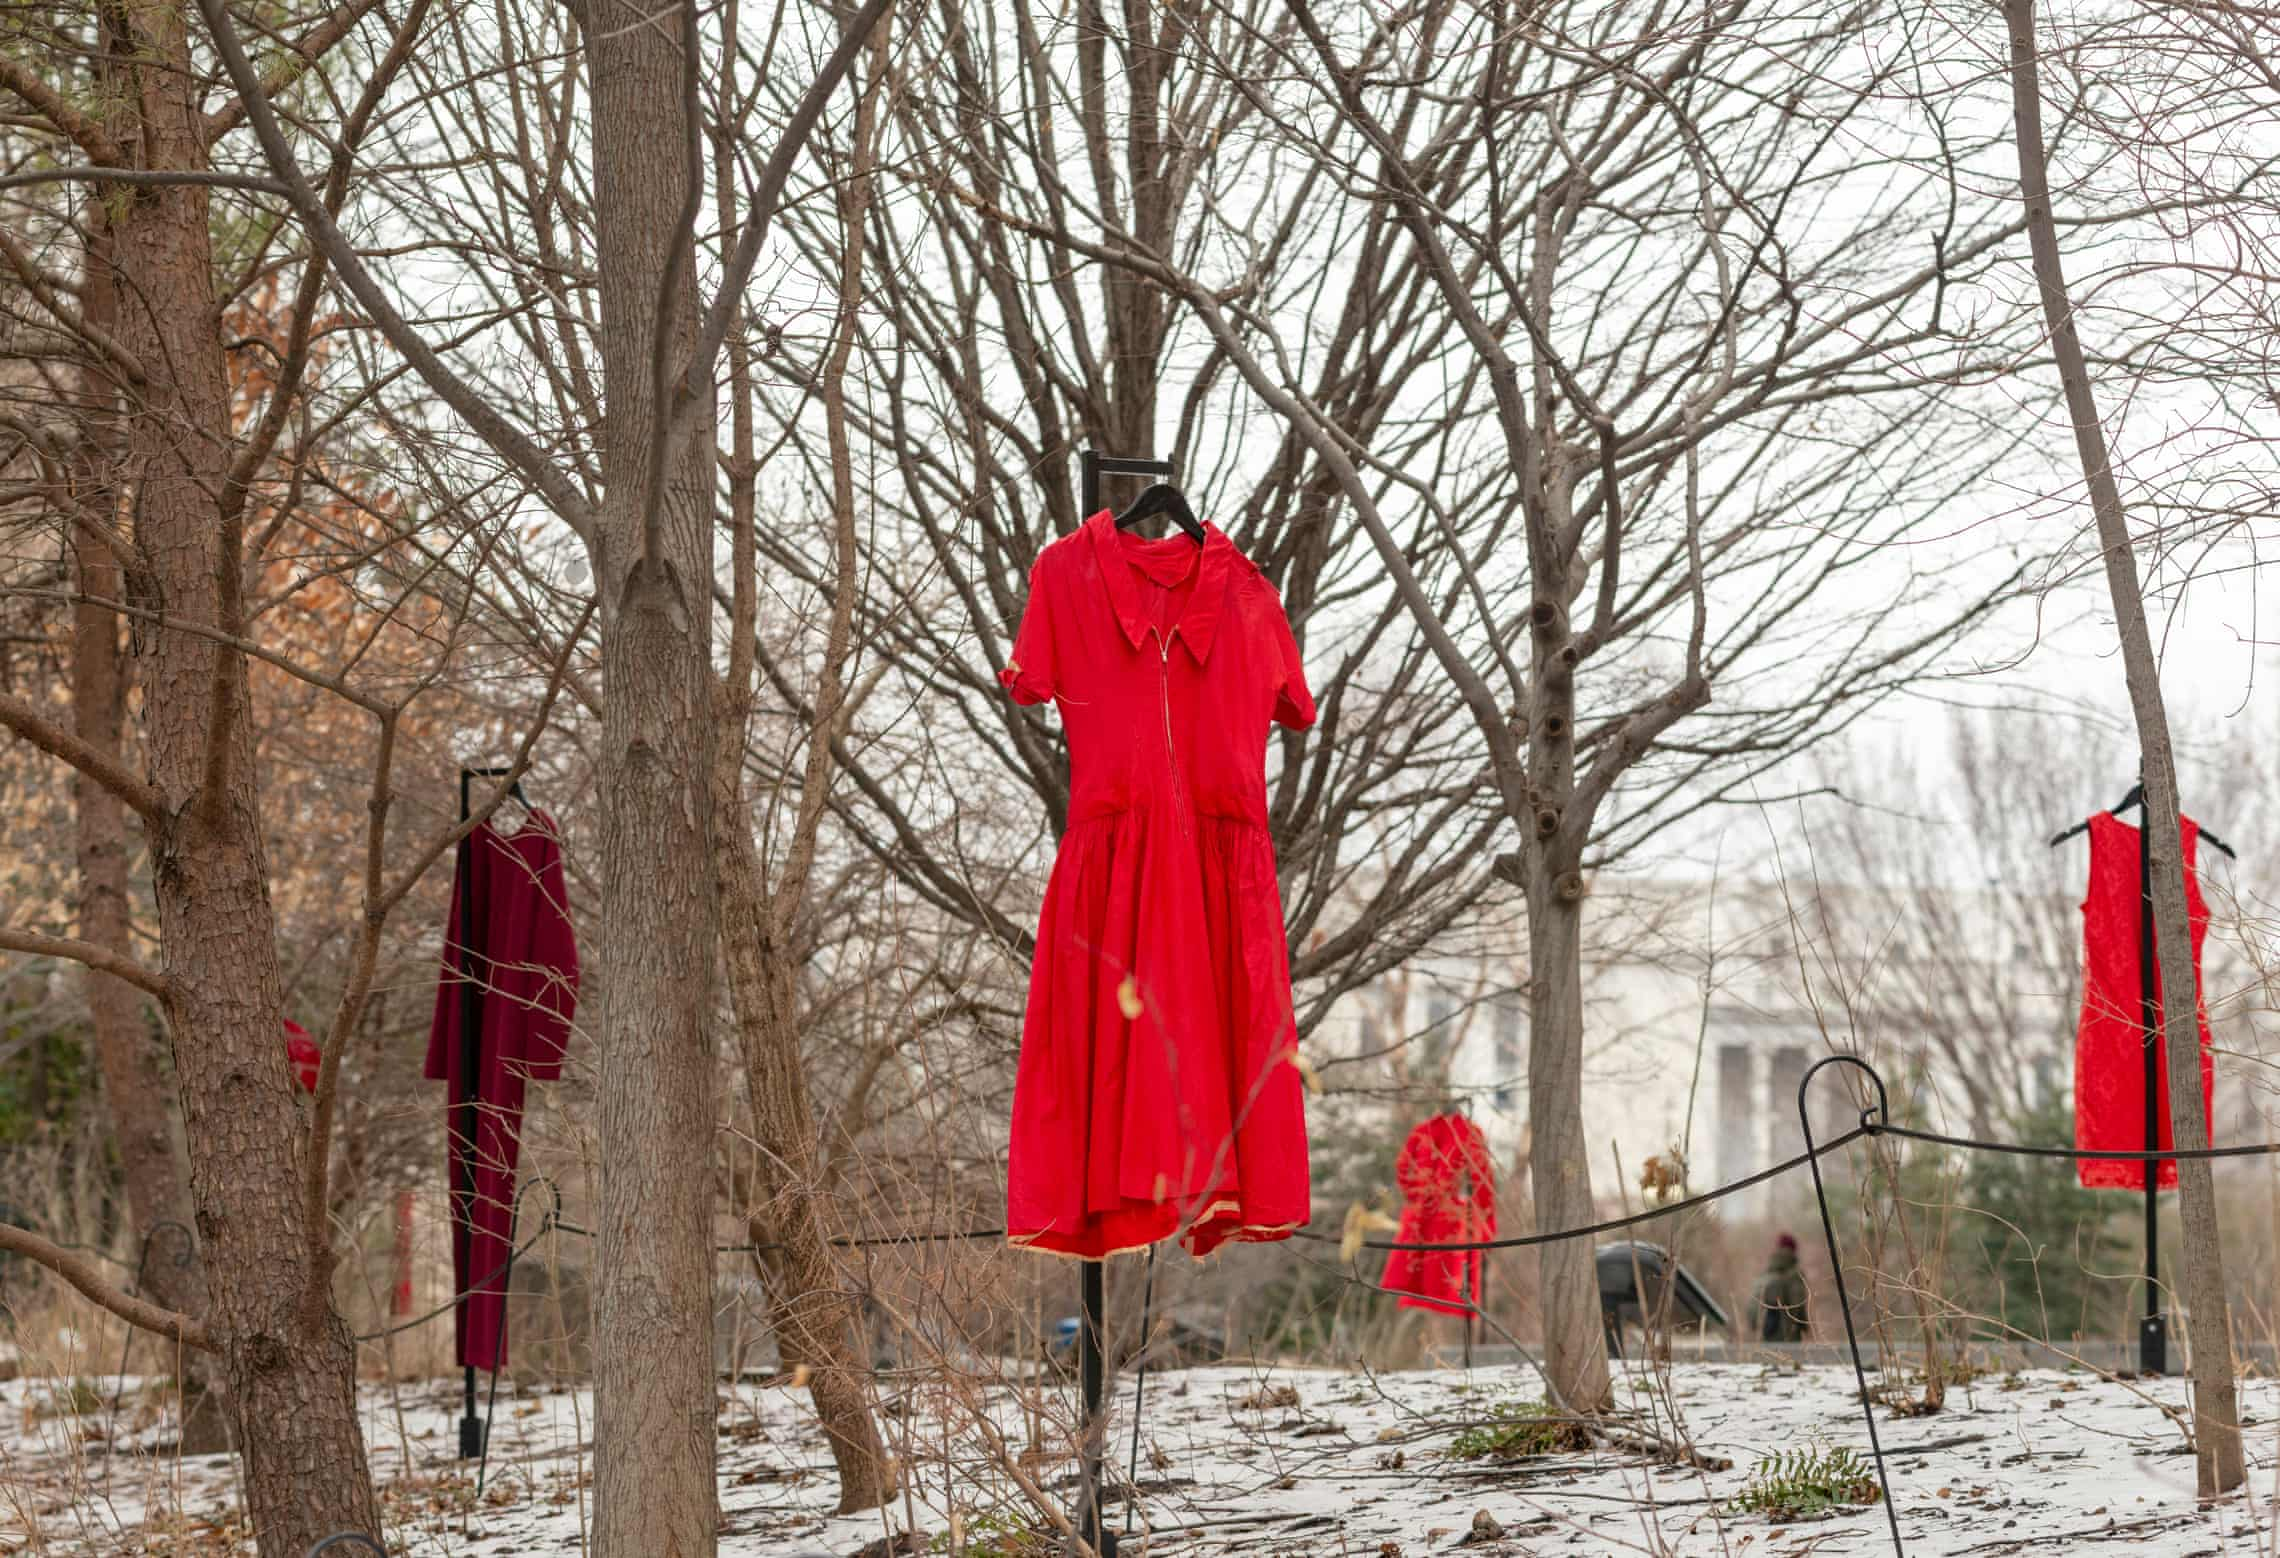 The REDress Project, an outdoor art installation by Métis artist Jaime Black at Smithsonian's National Museum of the American Indian in Washington DC. Photograph: Katherine Fogden/National Museum of the American Indian